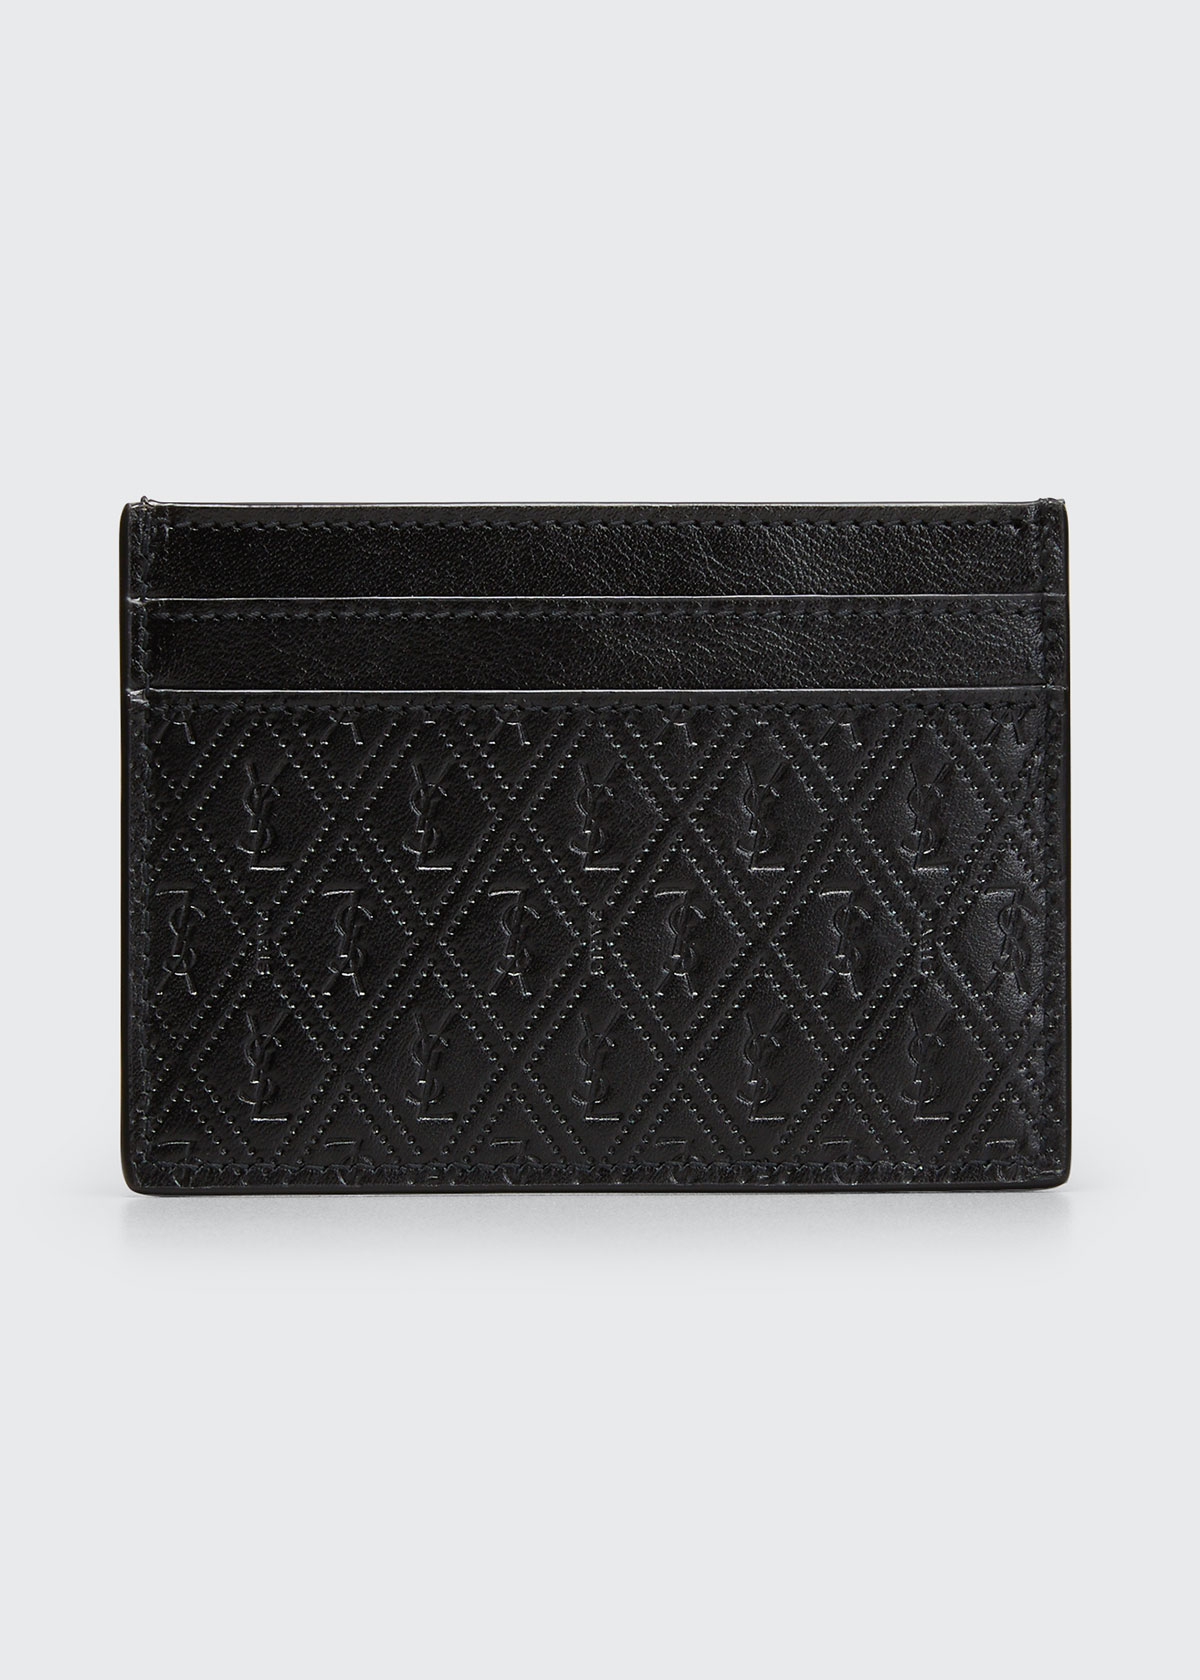 Saint Laurent MEN'S CASSANDRE YSL LOGO LEATHER CARD CASE